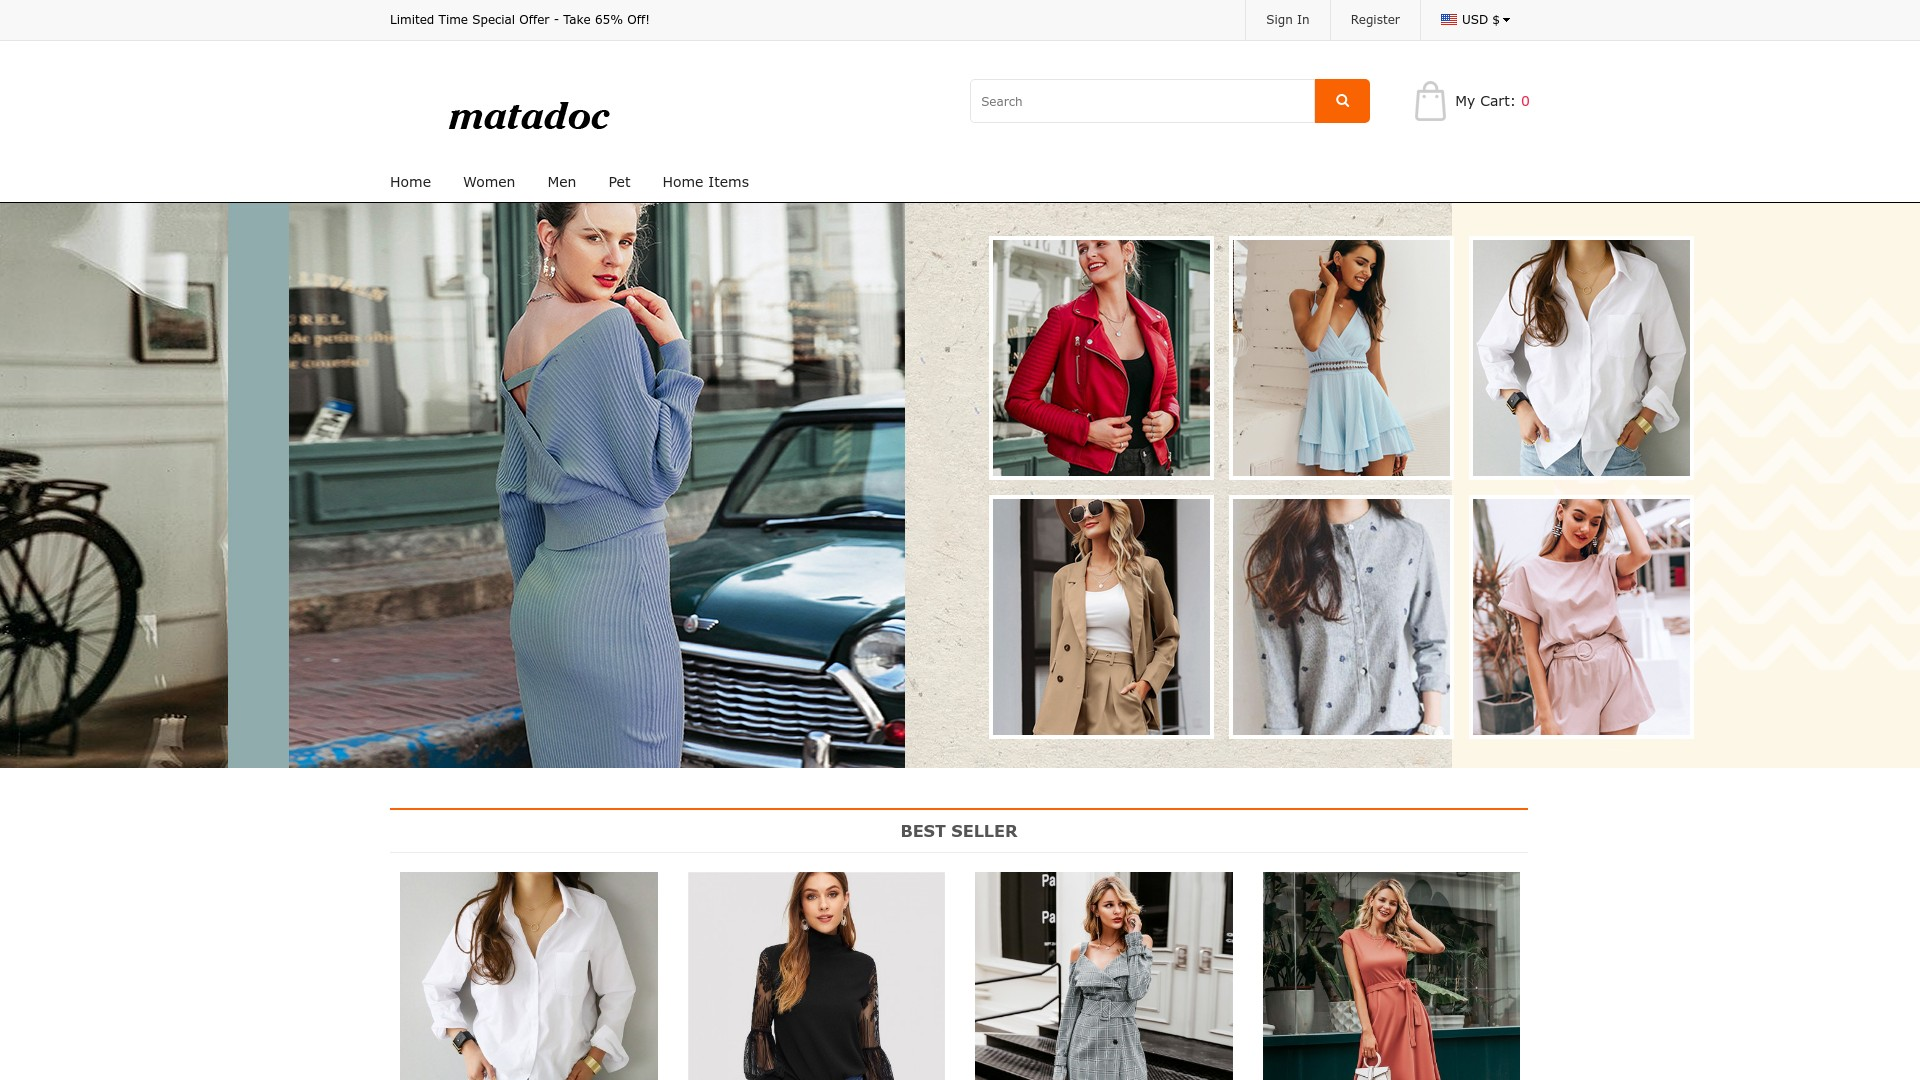 Is Matadoc a Scam? See the Review of the Online Store